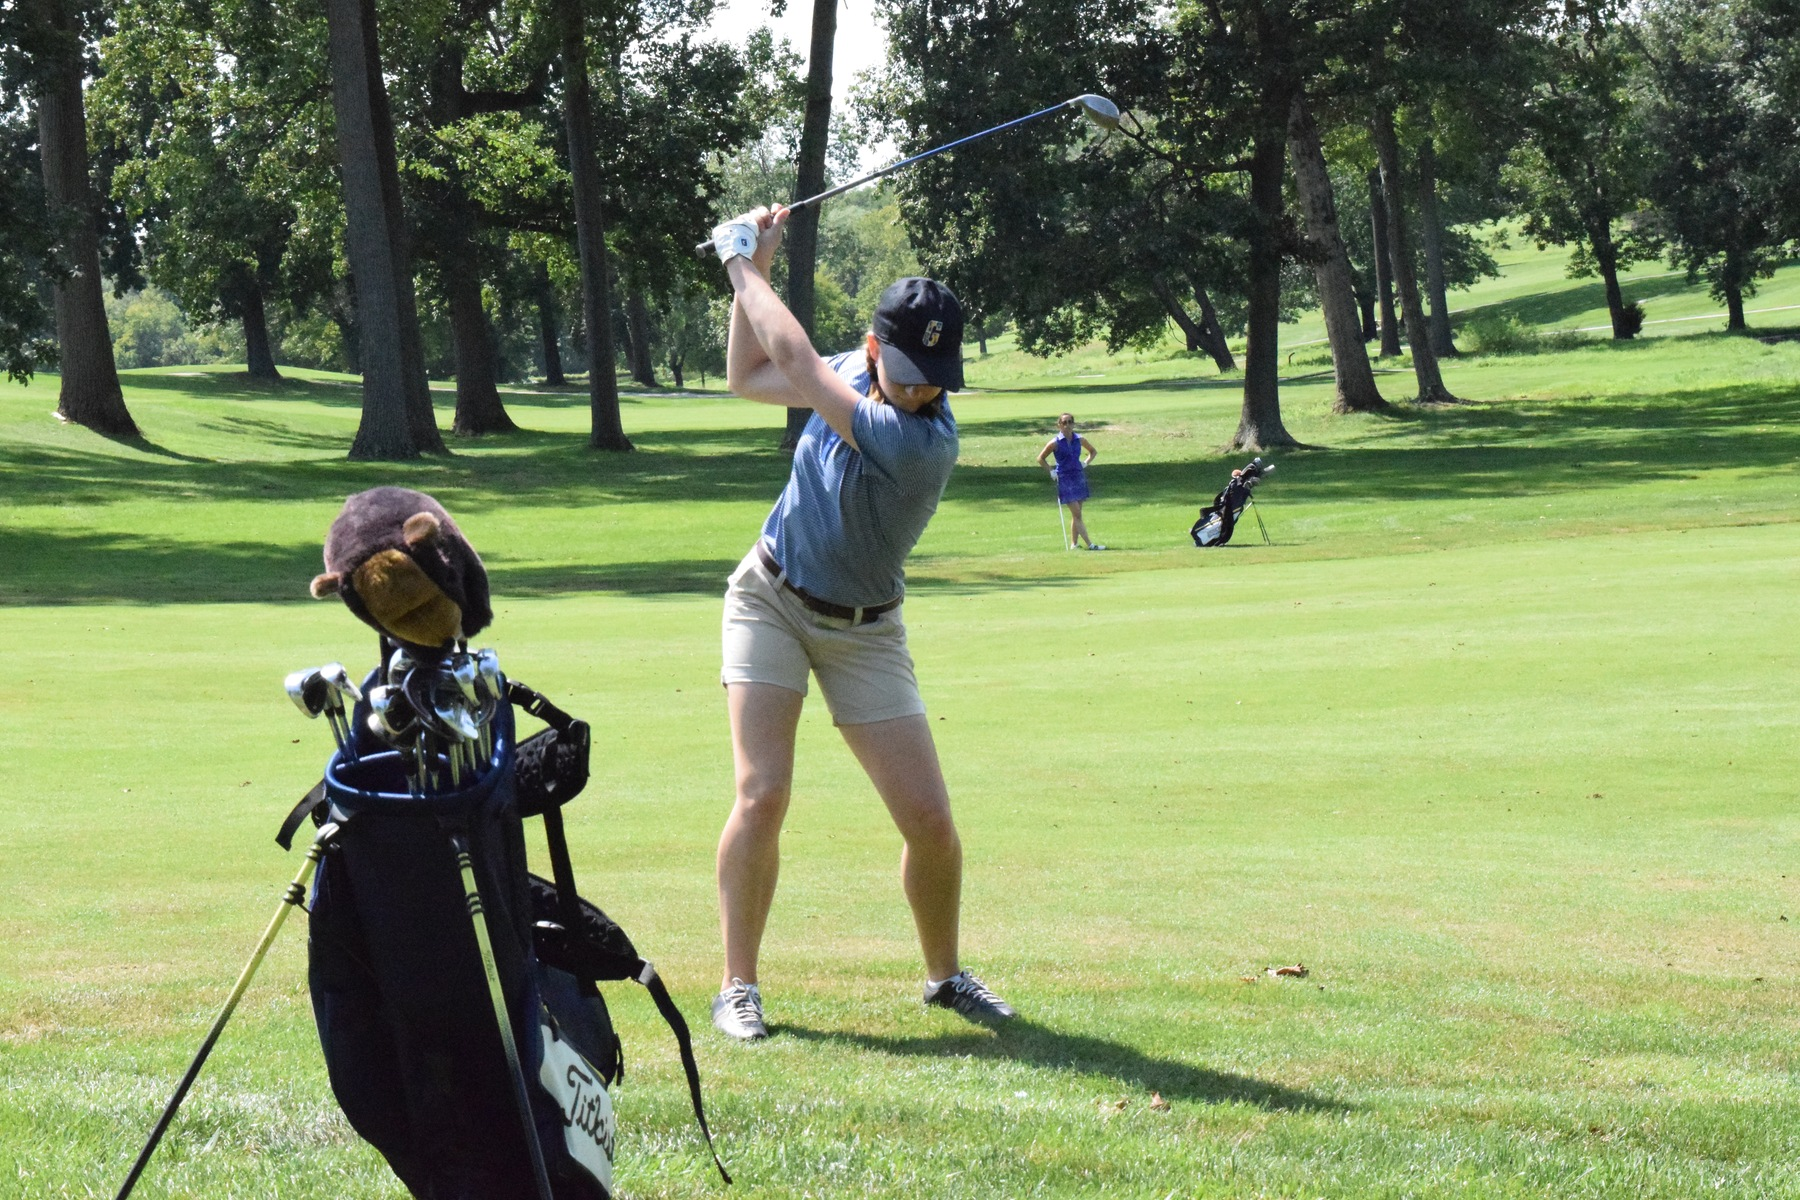 Gophers Place 3rd at Springbrook Invitational